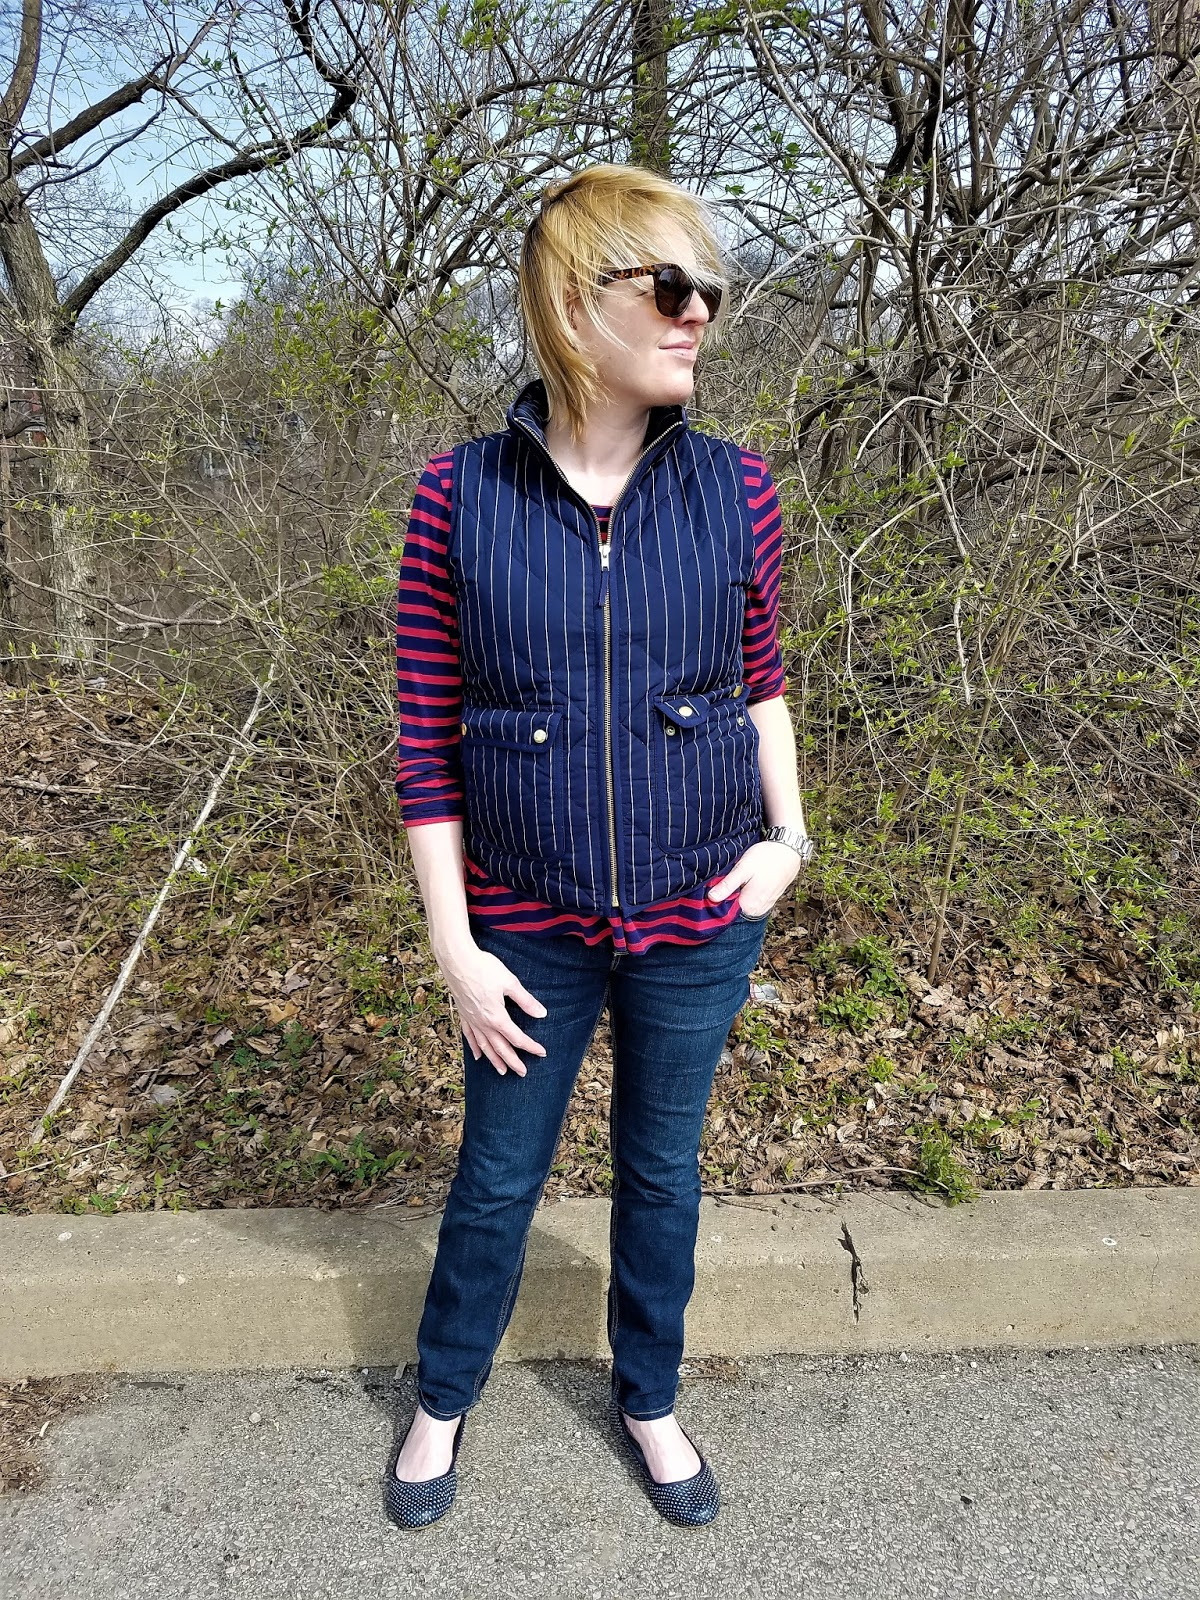 537d08931d Outfits Not Just Clothes  Sunny Day Stripes